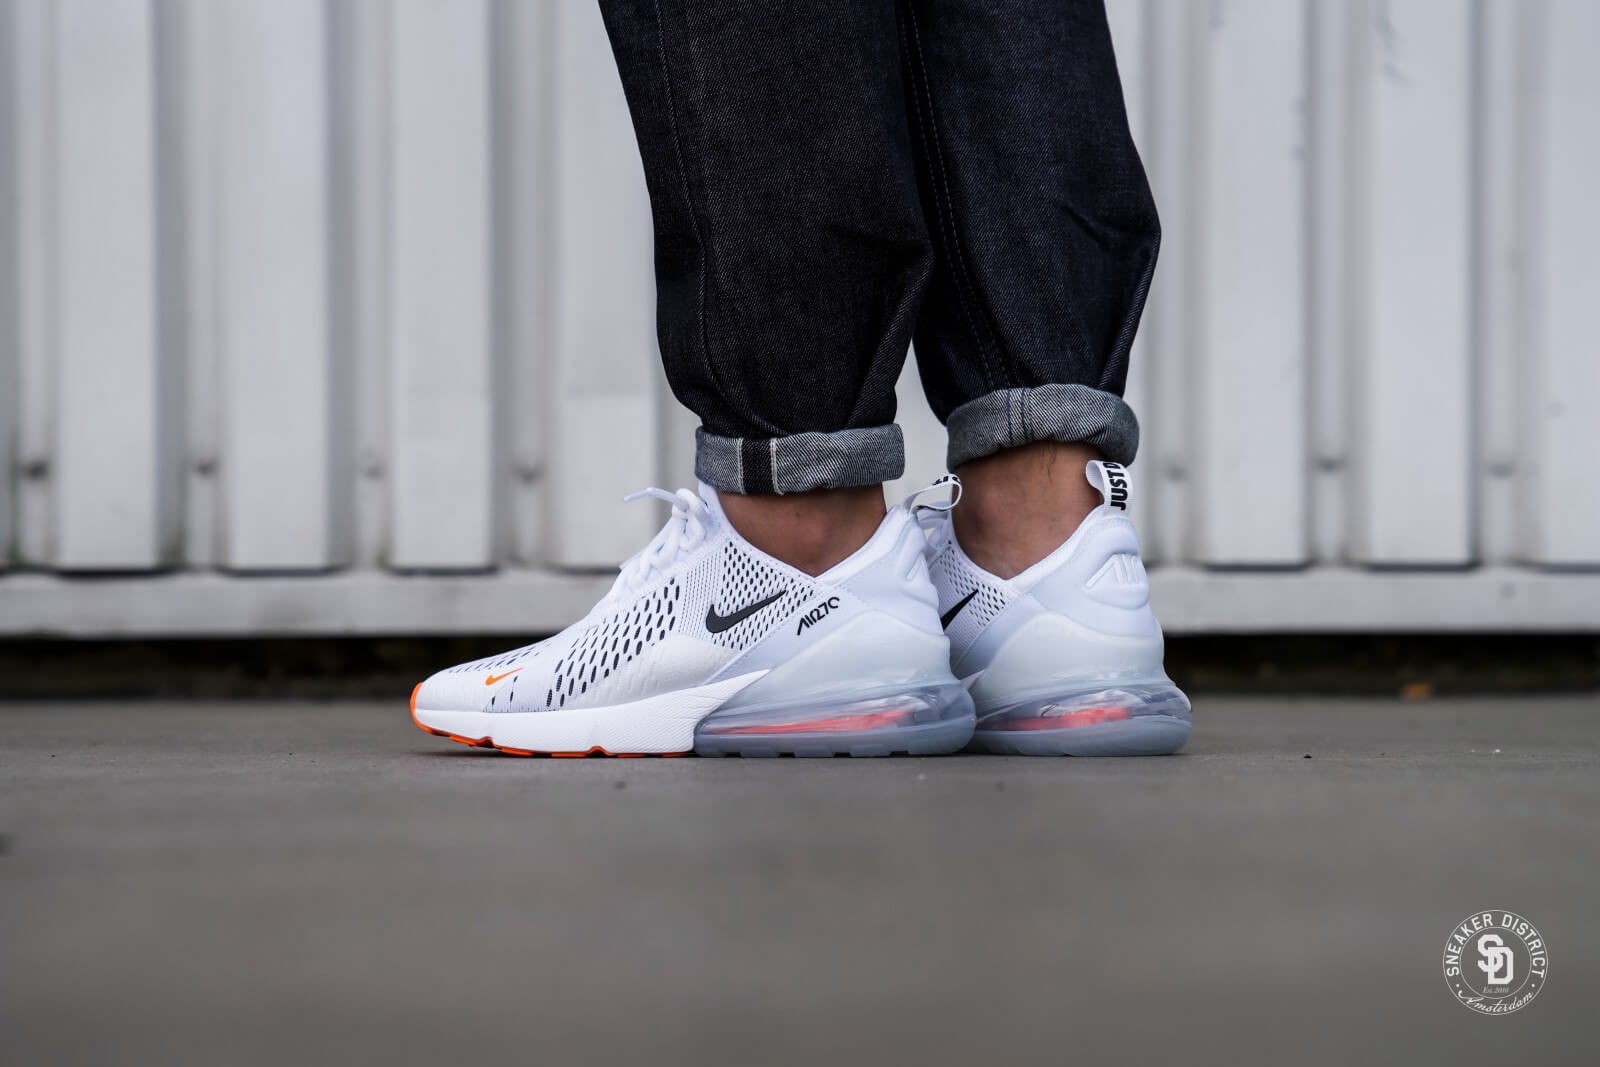 Nike Schoenen Nike Air Max 270 White/black-total Orange - Ah8050-106